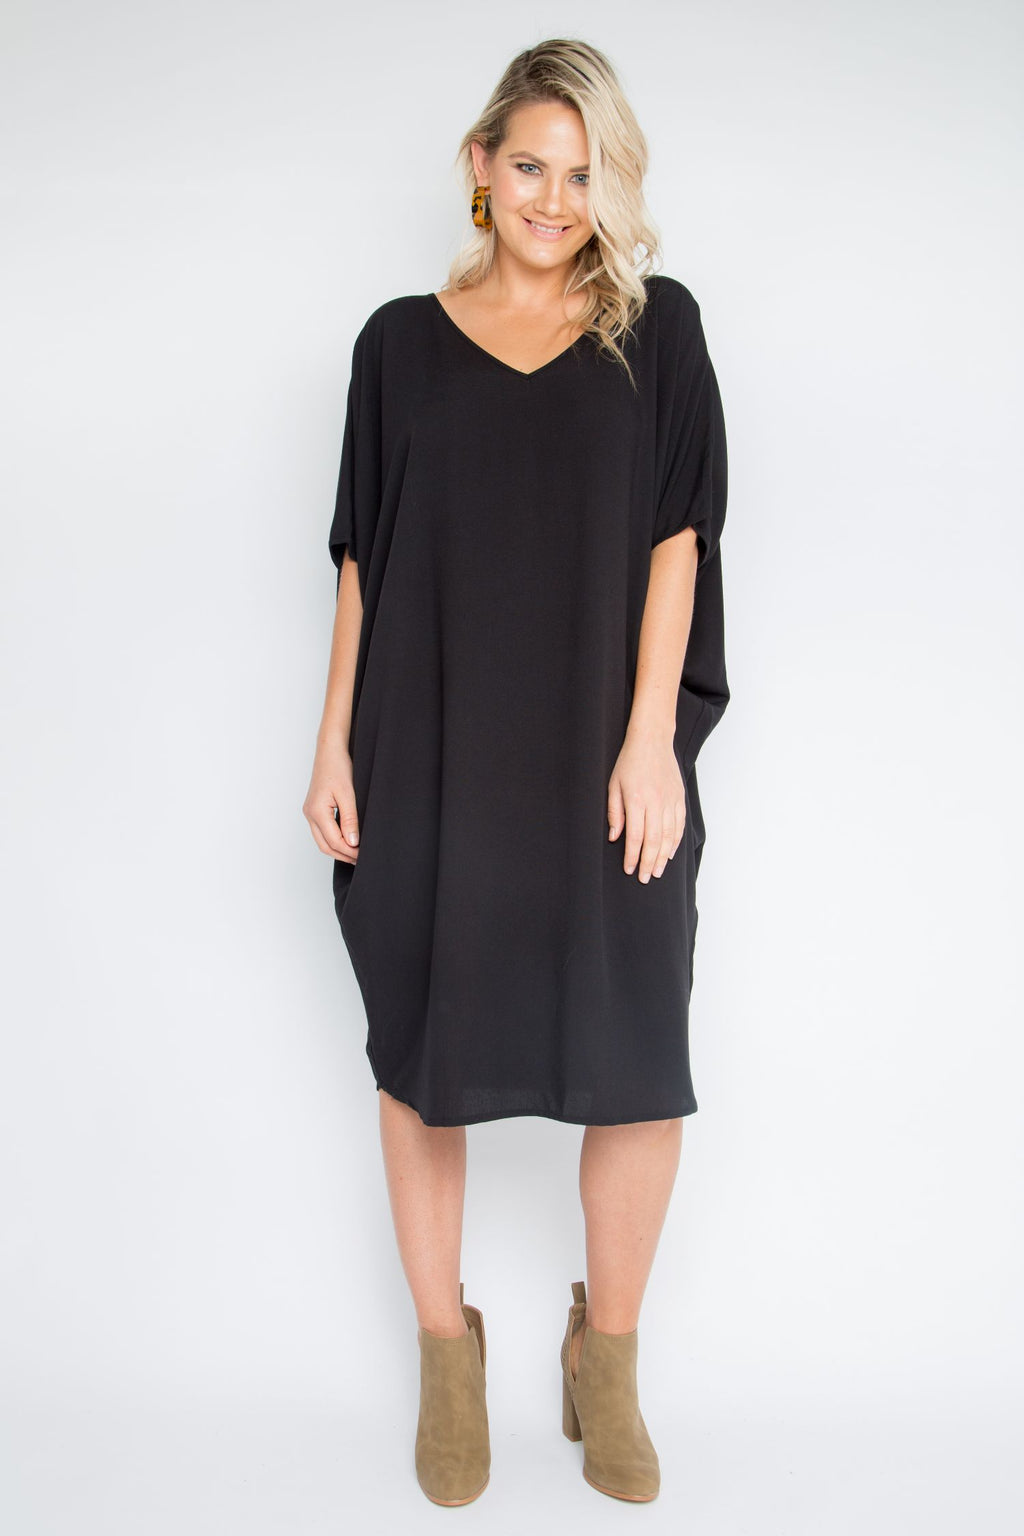 Woven Miracle Dress in Black